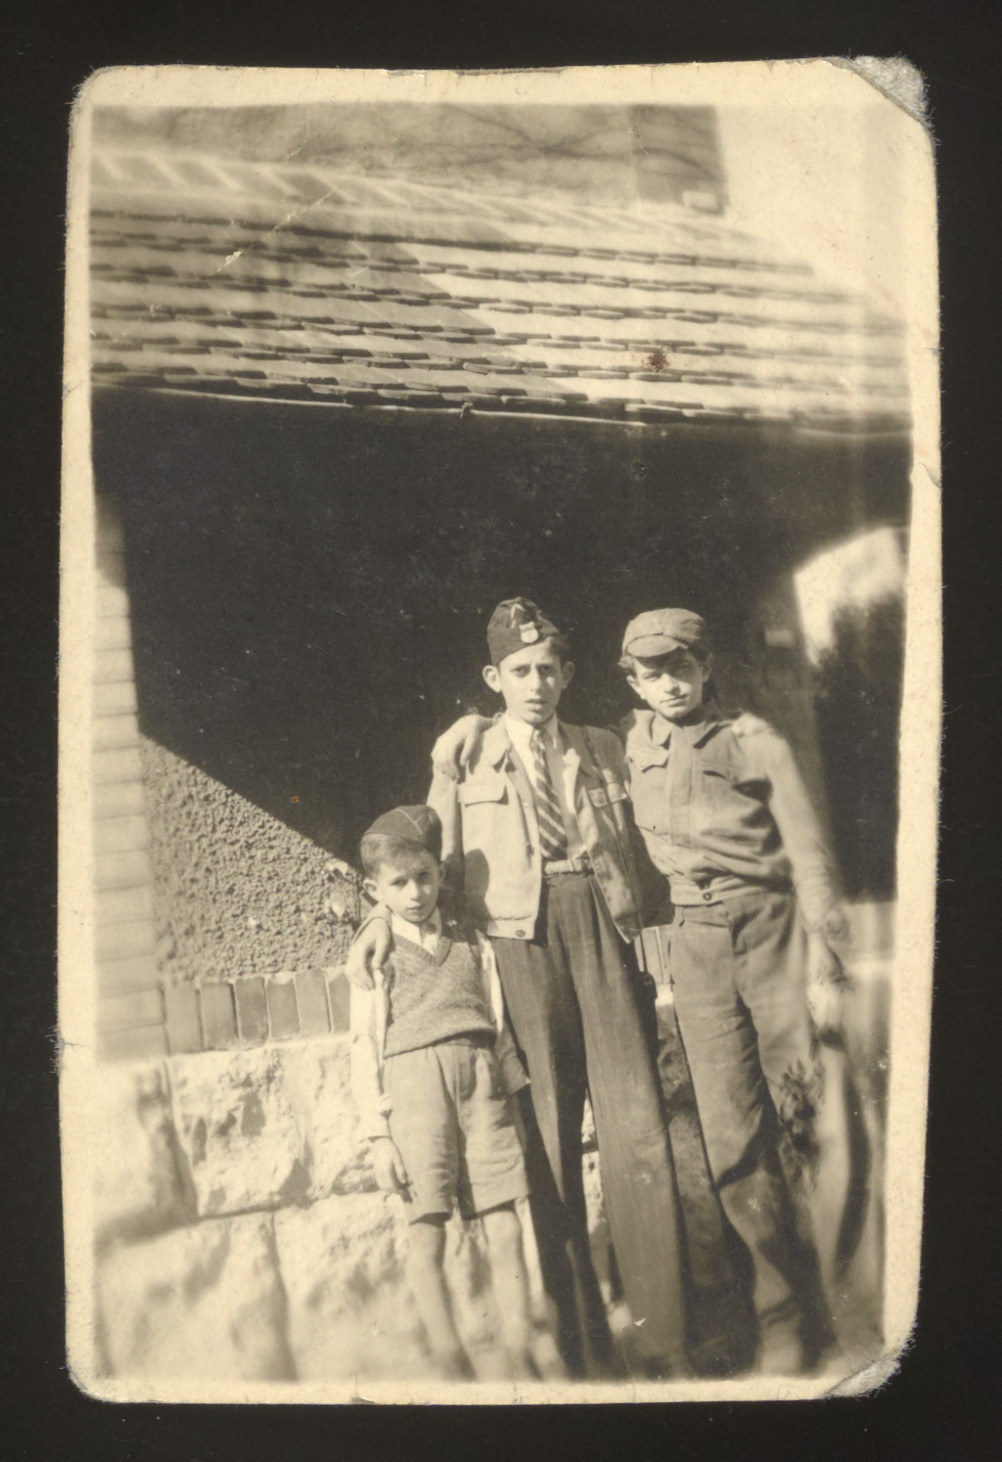 Three Jewish children pose outside after liberation.  Among those pictured is Arthur Spielman.